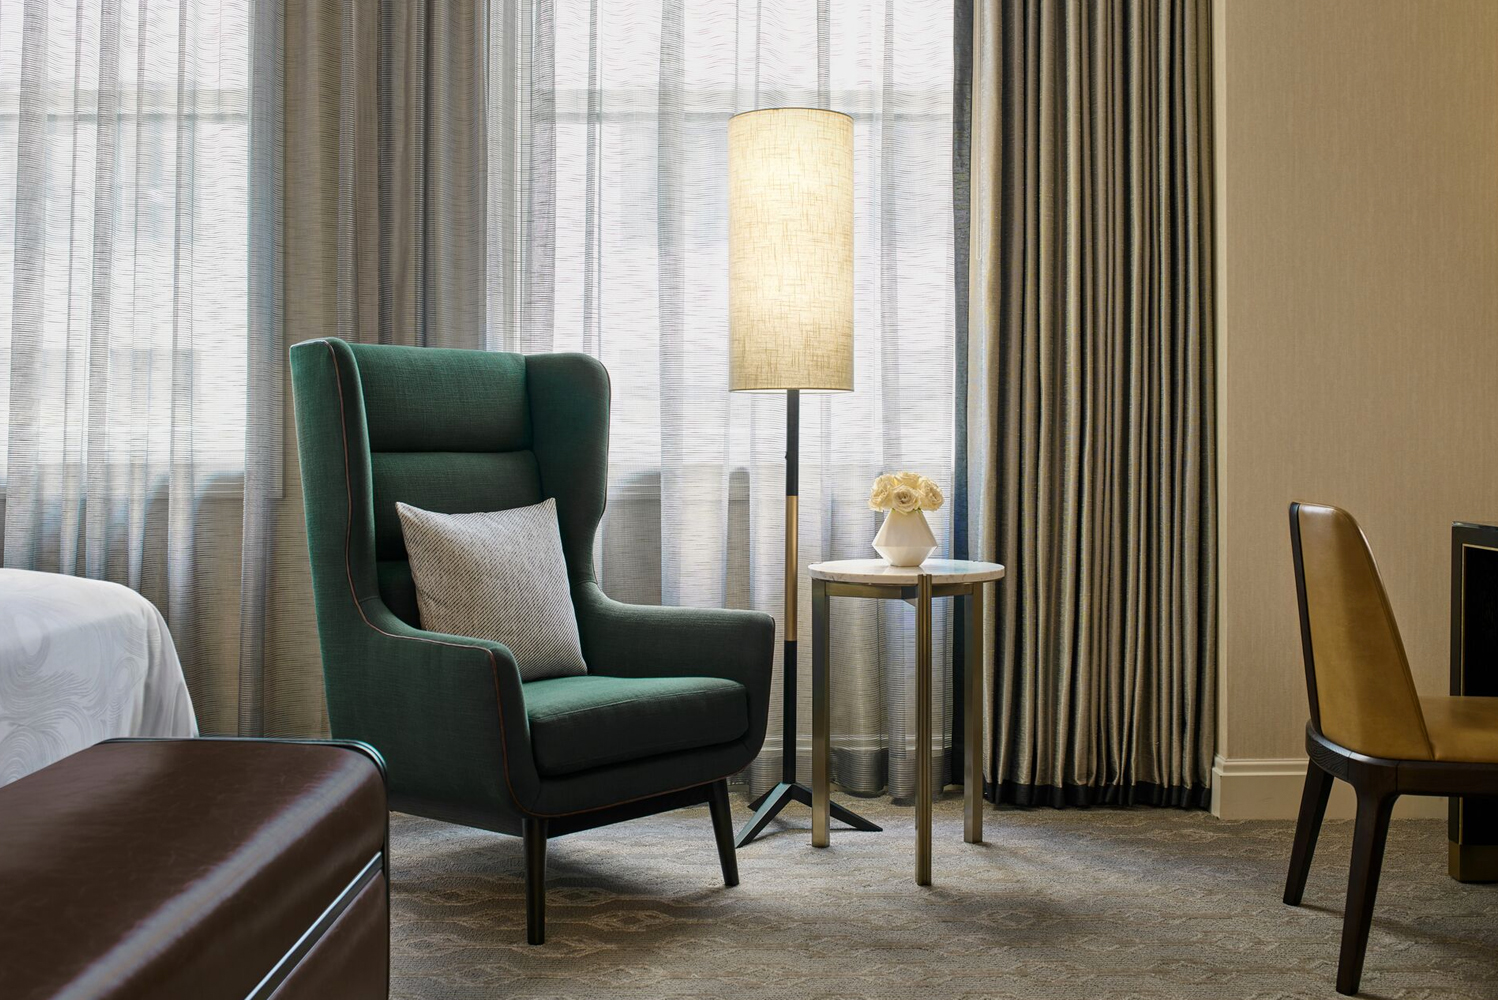 JW Marriott Chicago will remain open for the duration of the renovation program, which is anticipated to be completed by Spring 2020.